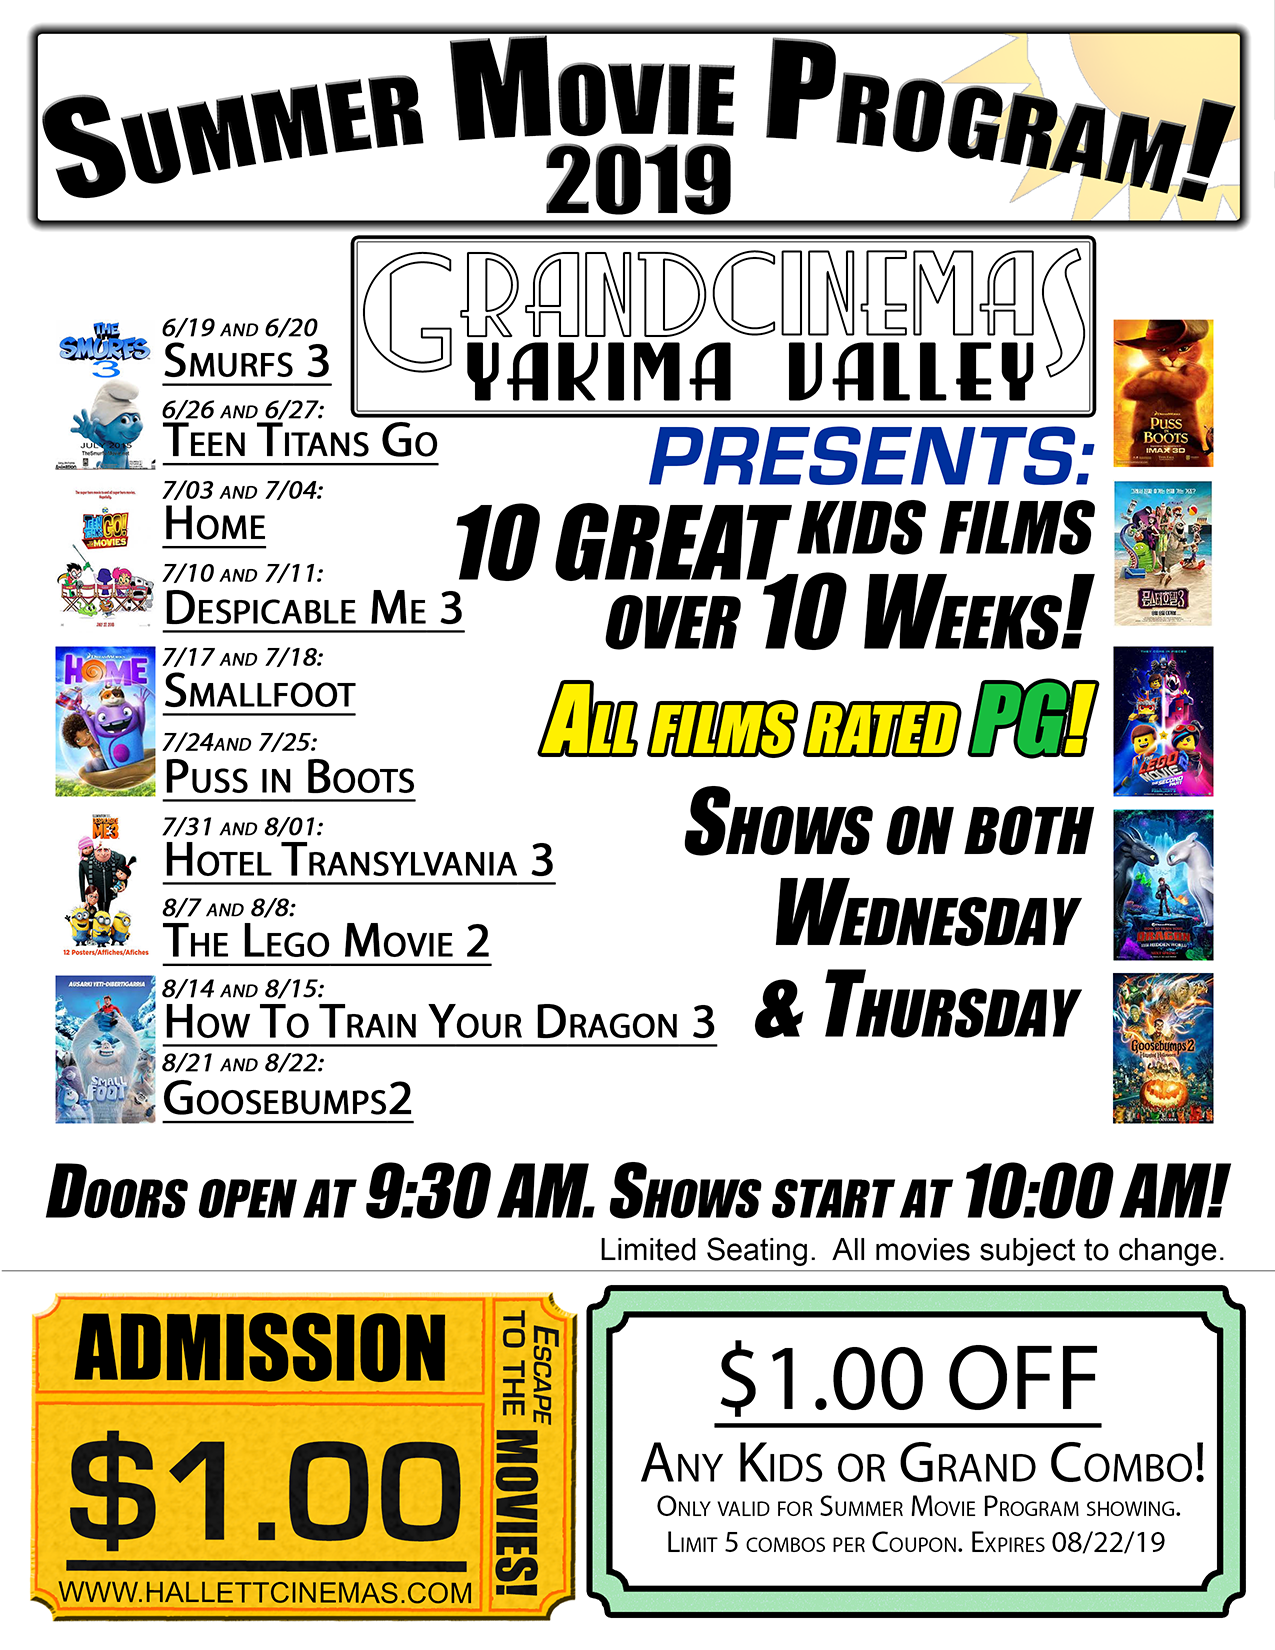 Presenting the 2019 Grand Cinemas Summer Movie Program!  10 Great Kids Films over 10 weeks! All films are rated PG! Shows on Both Wednesday and Thursday at 10am! Doors Open at 9:30am!  6/19 & 6/20- Smurfs 3 6/26 & 6/27- Teen Titans Go to the Movies 7/3 & 7/4- Home 7/10 & 7/11- Despicable Me 3 7/17 & 7/18- Smallfoot 7/24 & 7/25- Puss in Boots 7/31 & 8/1- Hotel Transylvania 3 8/7 & 8/8- The Lego Movie 2 8/14 & 8/15- How to Train Your Dragon 3 8/21 & 8/22- Goosebumps 2  Any question? Call us at 509-837-7182!